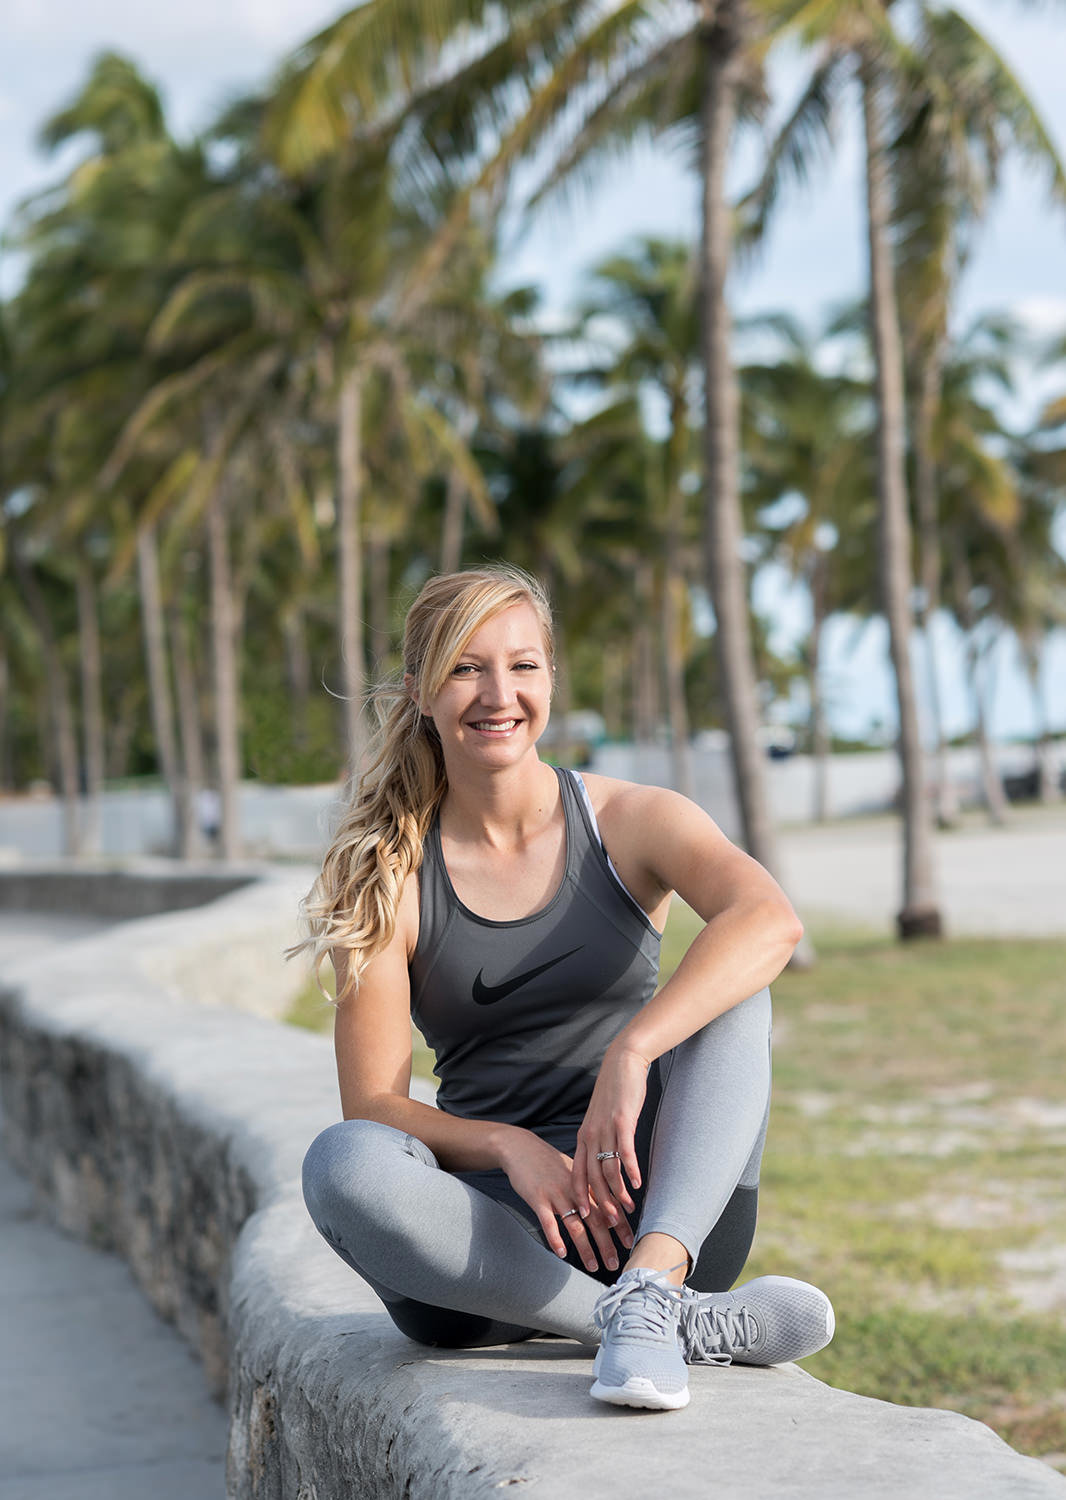 Woman in athletic clothing sitting by the beach